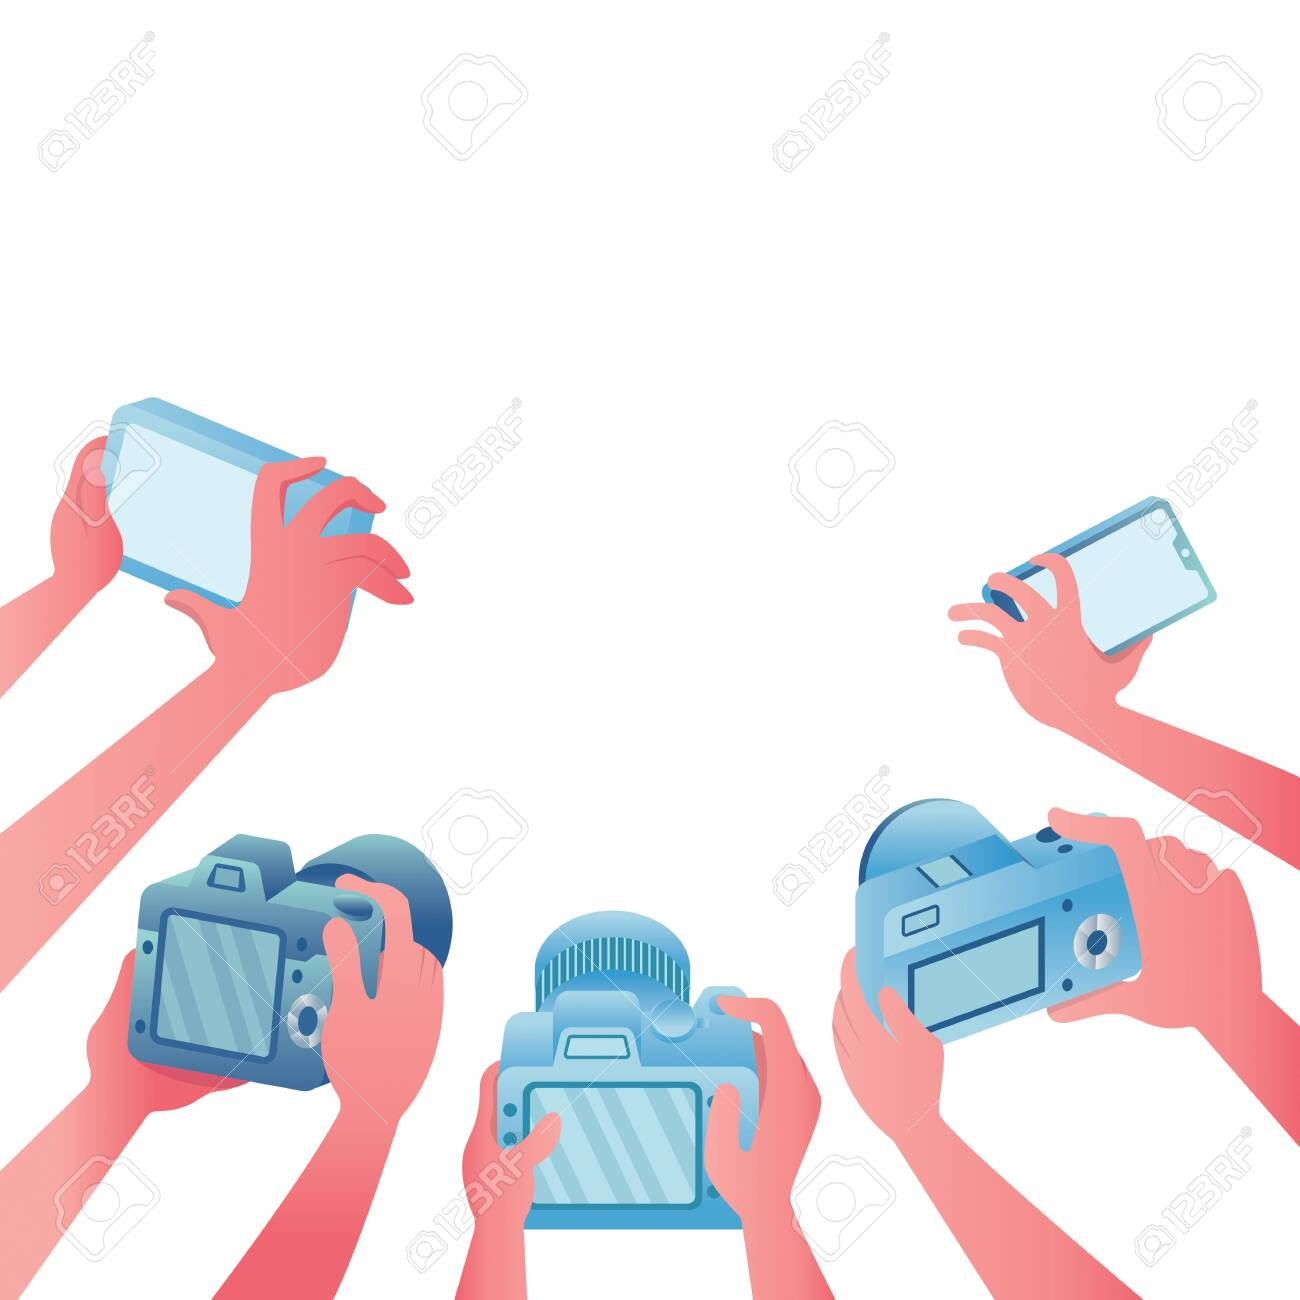 Cartoon illustration depicting a group of reporters at work on white background. - 143560290